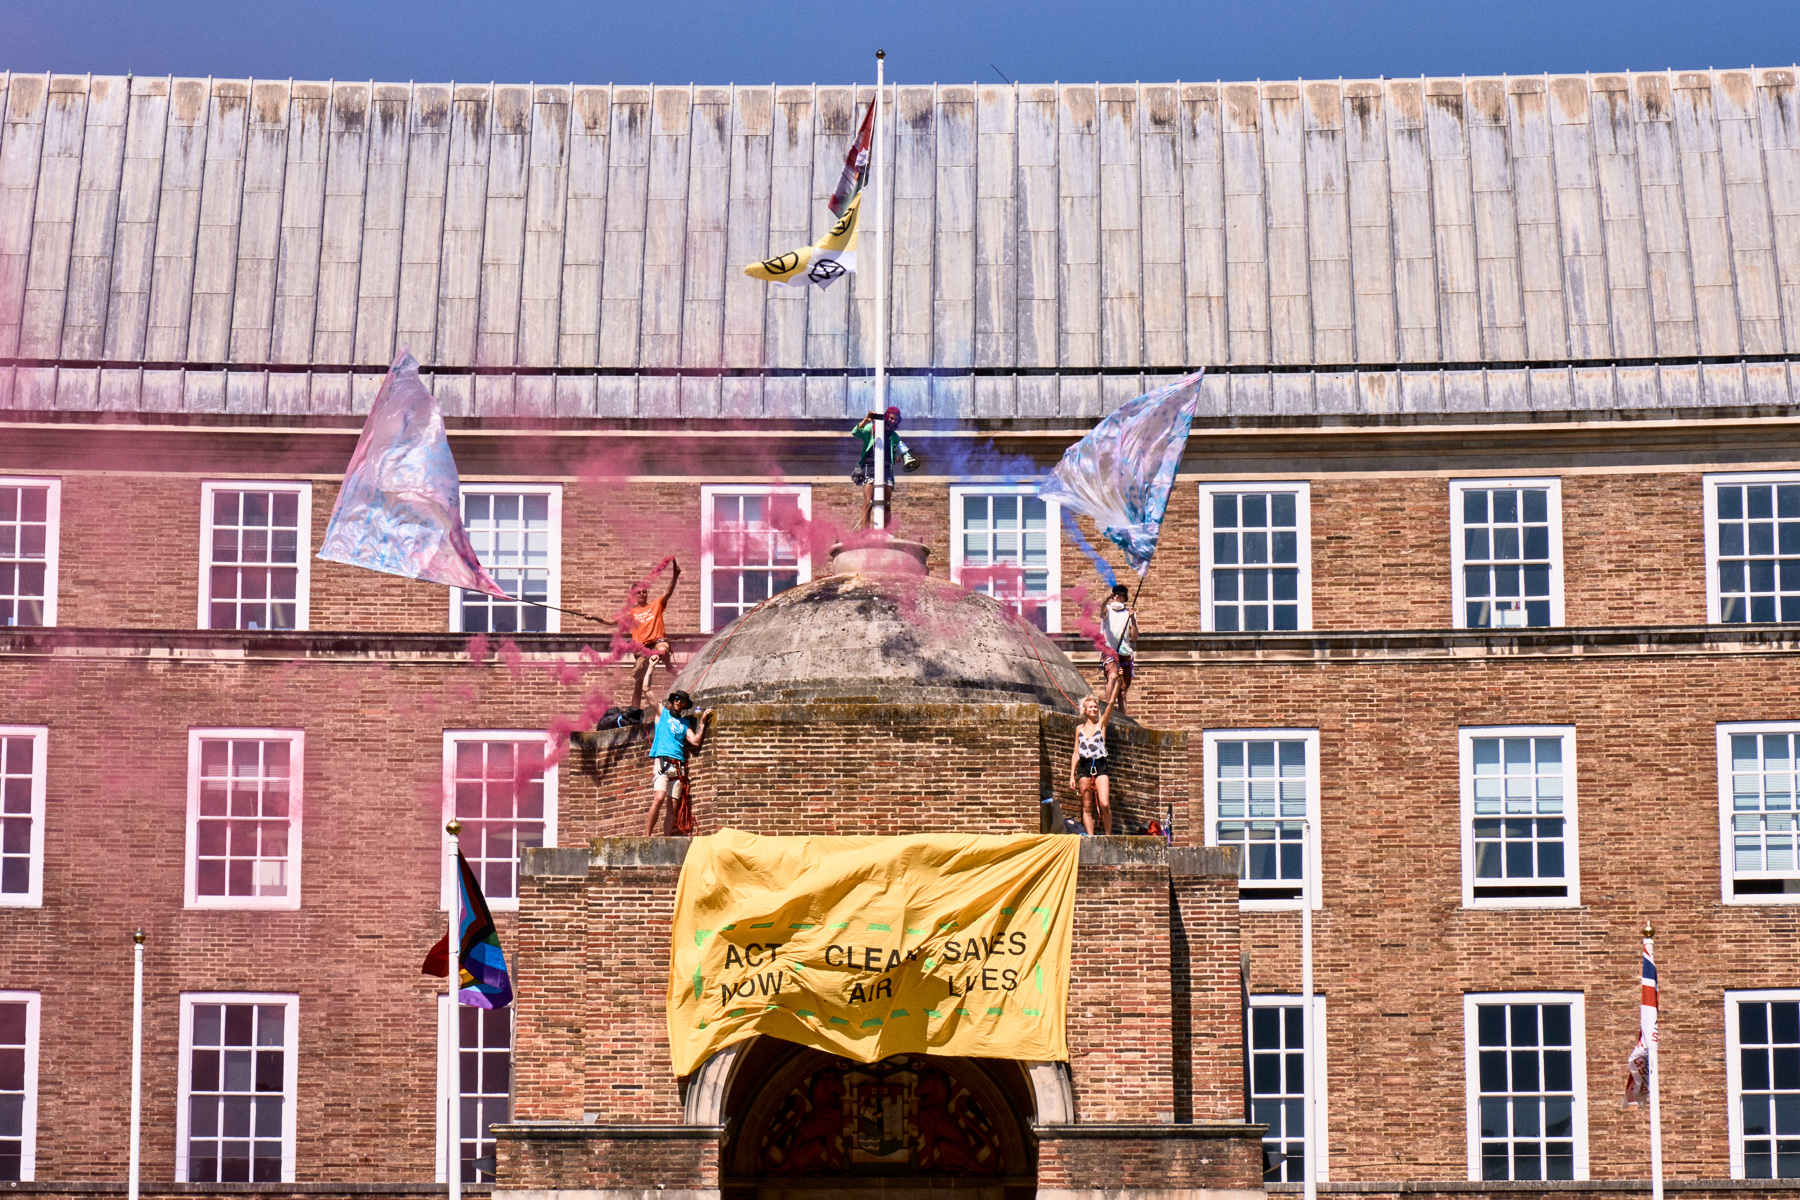 """Photo: Extinction Rebellion wave flags atop the roof of City Hall amidst colourful smoke from smoke bombs and a sign that imitates coronavirus messaging, saying """"Act Now, Clean Air, Save Lives""""."""